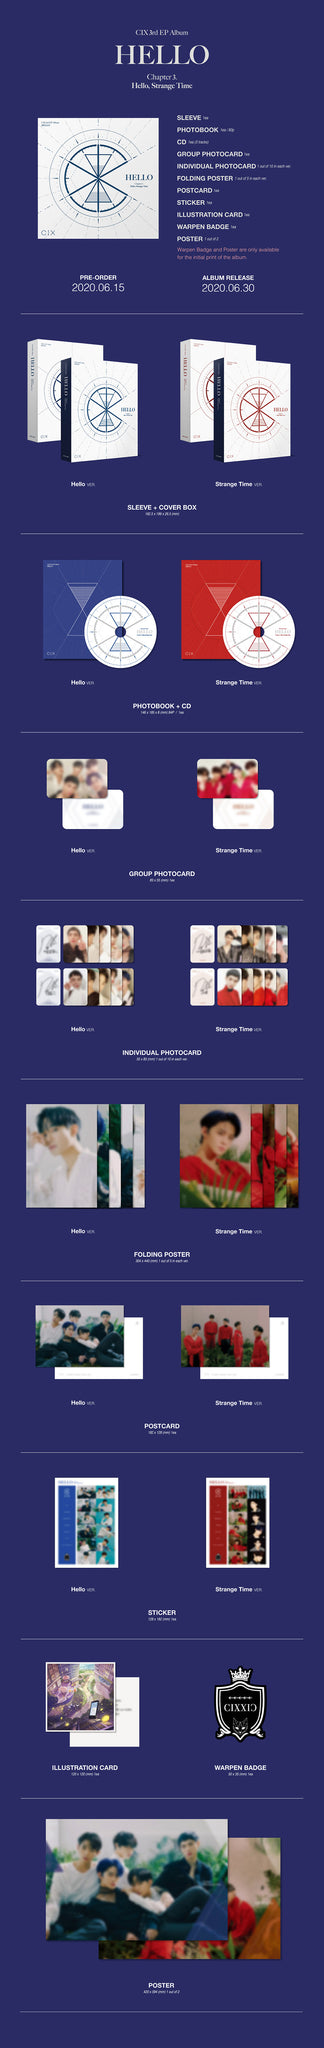 CIX 3rd Mini Album - 'HELLO' Chapter 3 Hello, Strange Time (Strange Time ver.) CD + Poster